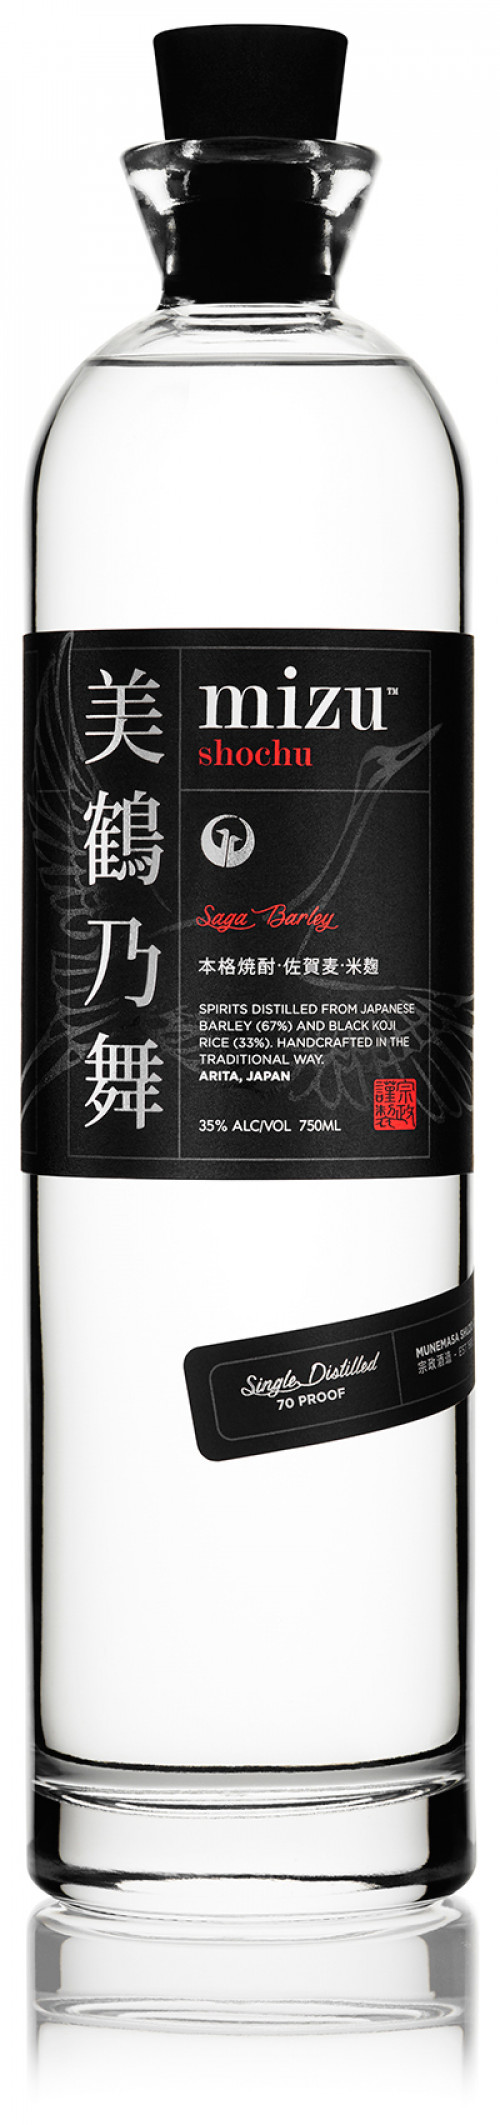 Mizu Shochu Saga Barley 750Ml